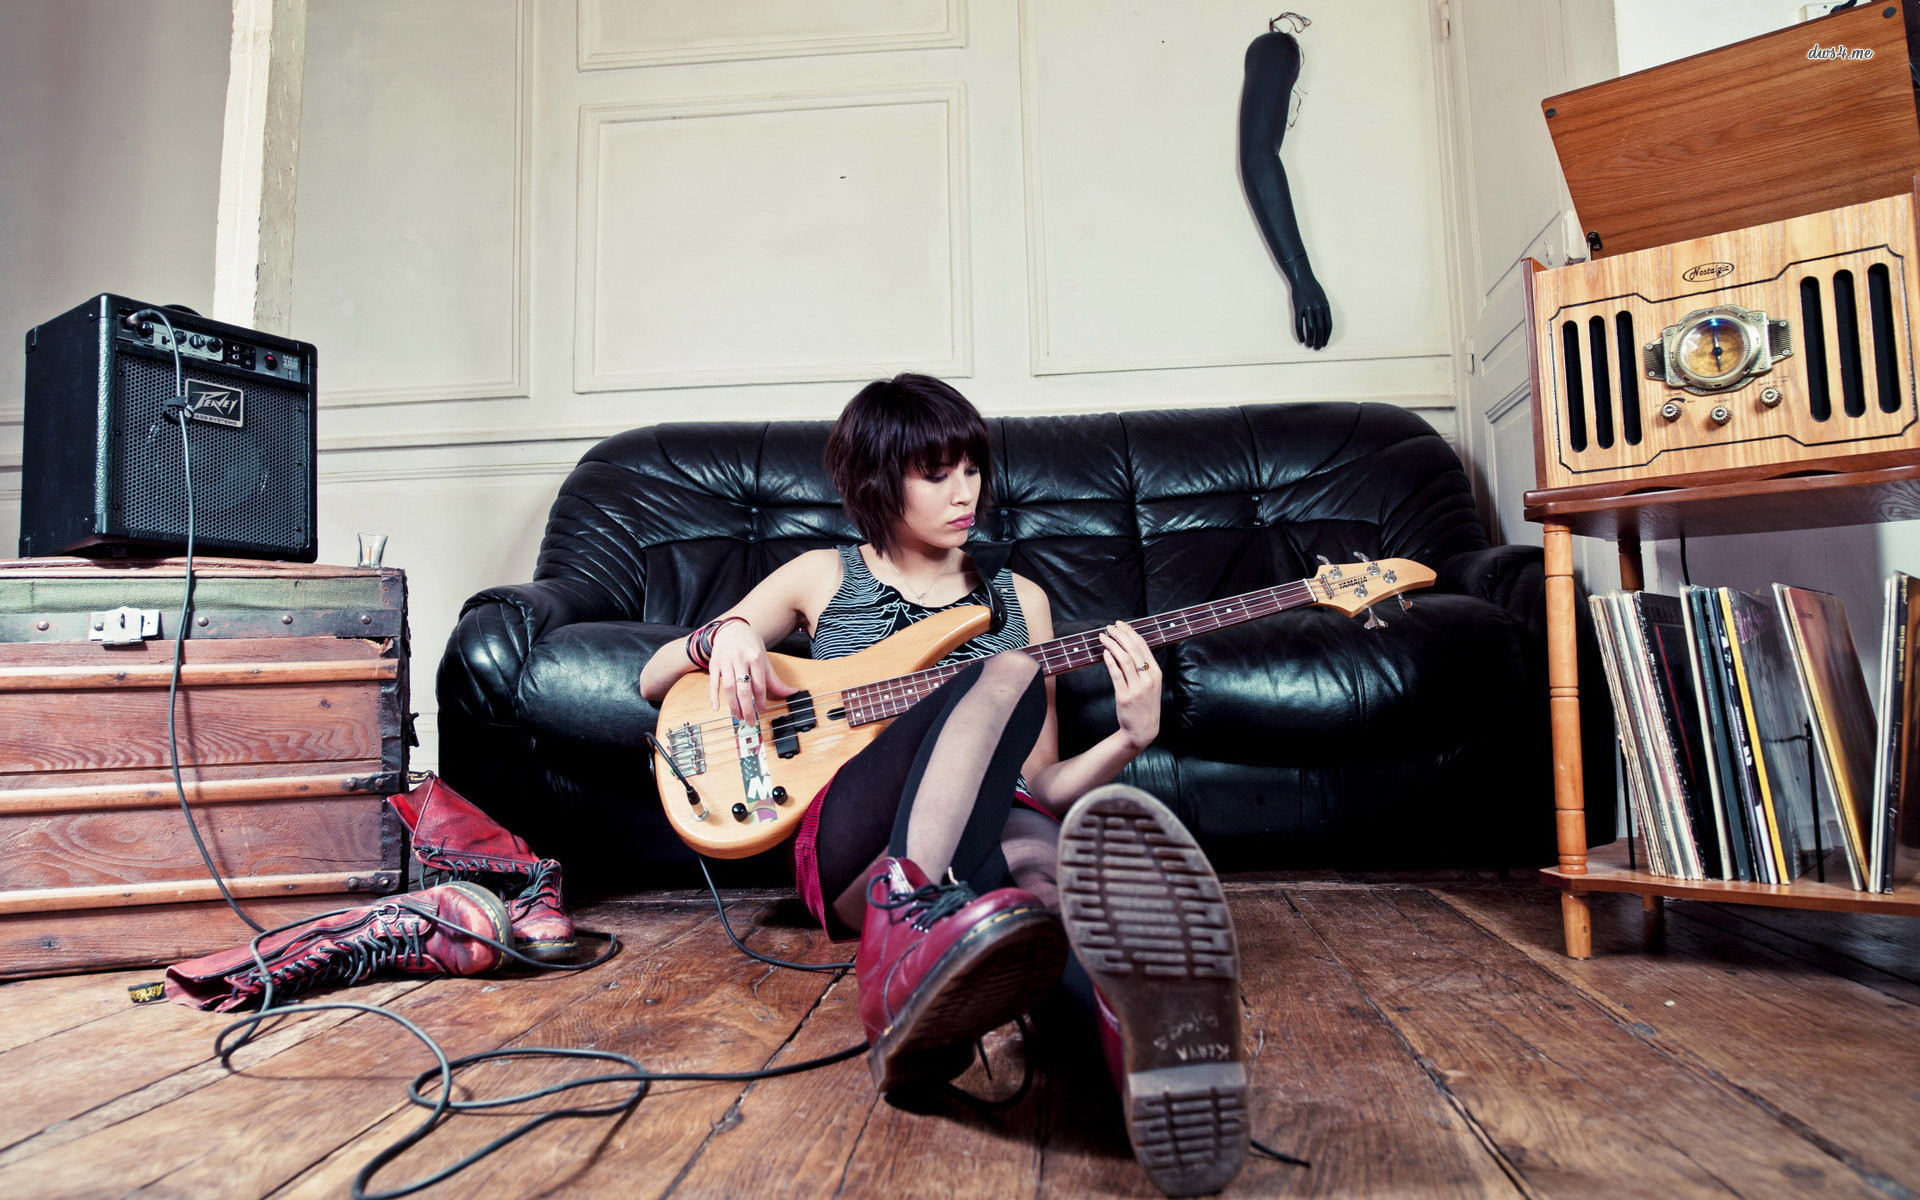 Res: 1920x1200, ... Girl playing an electric guitar wallpaper  ...